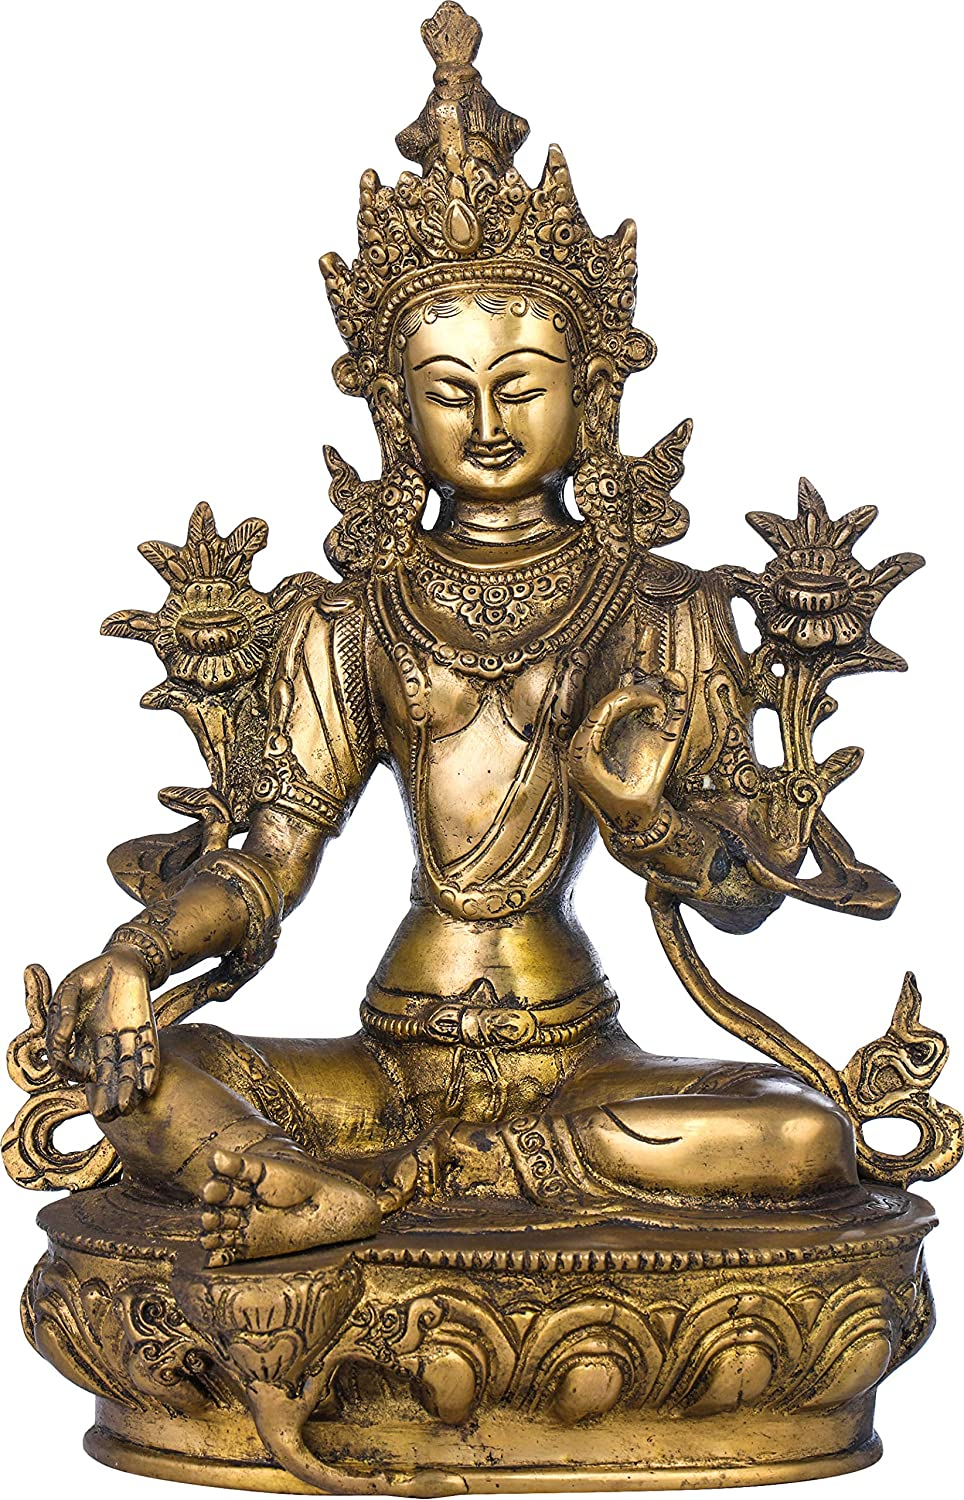 Exotic India Green Tara (Tibetan Buddhist Deity) - Brass Statue - Color Natural Brass Color